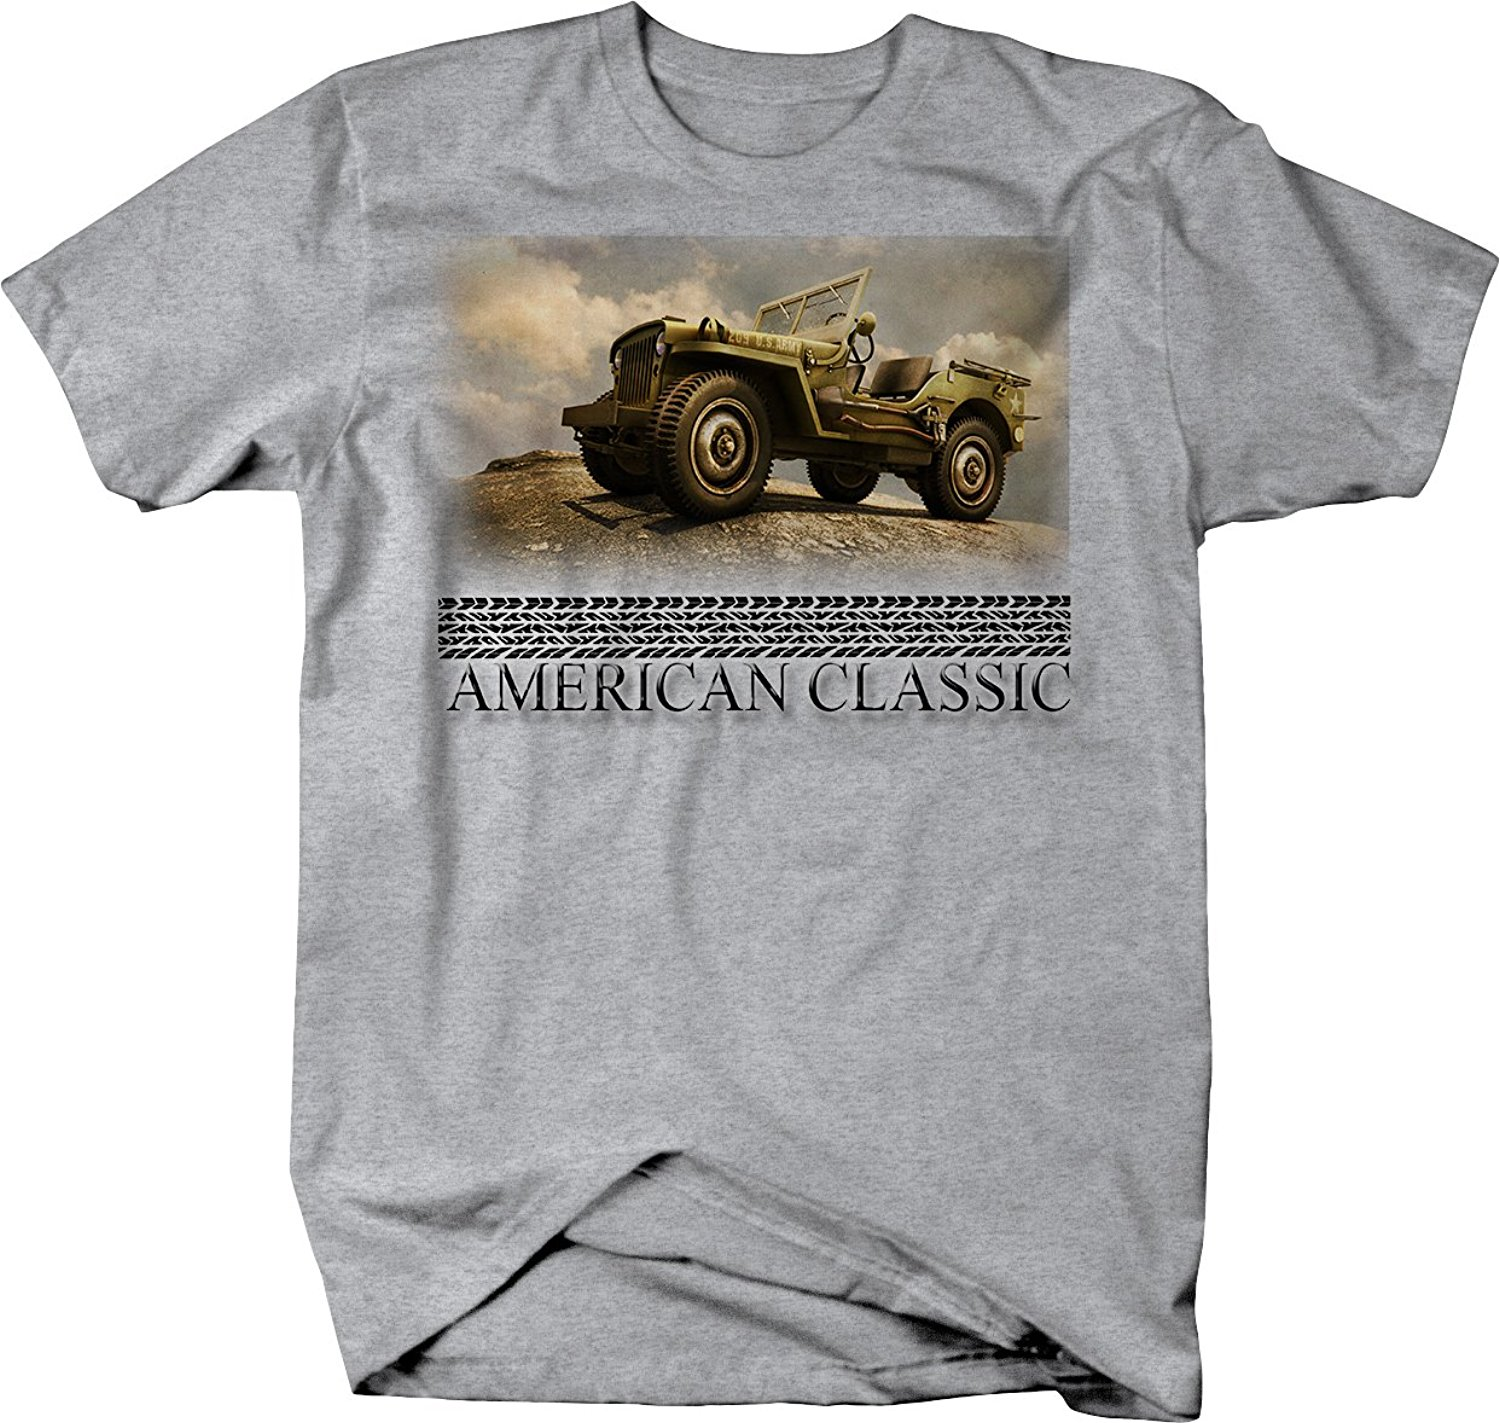 Military Jeep For Sale >> Us 12 06 5 Off 2019 Hot Sale Fashion American Classic Willys Us Military Jeep Army Vintage Tee Shirt In T Shirts From Men S Clothing On Aliexpress